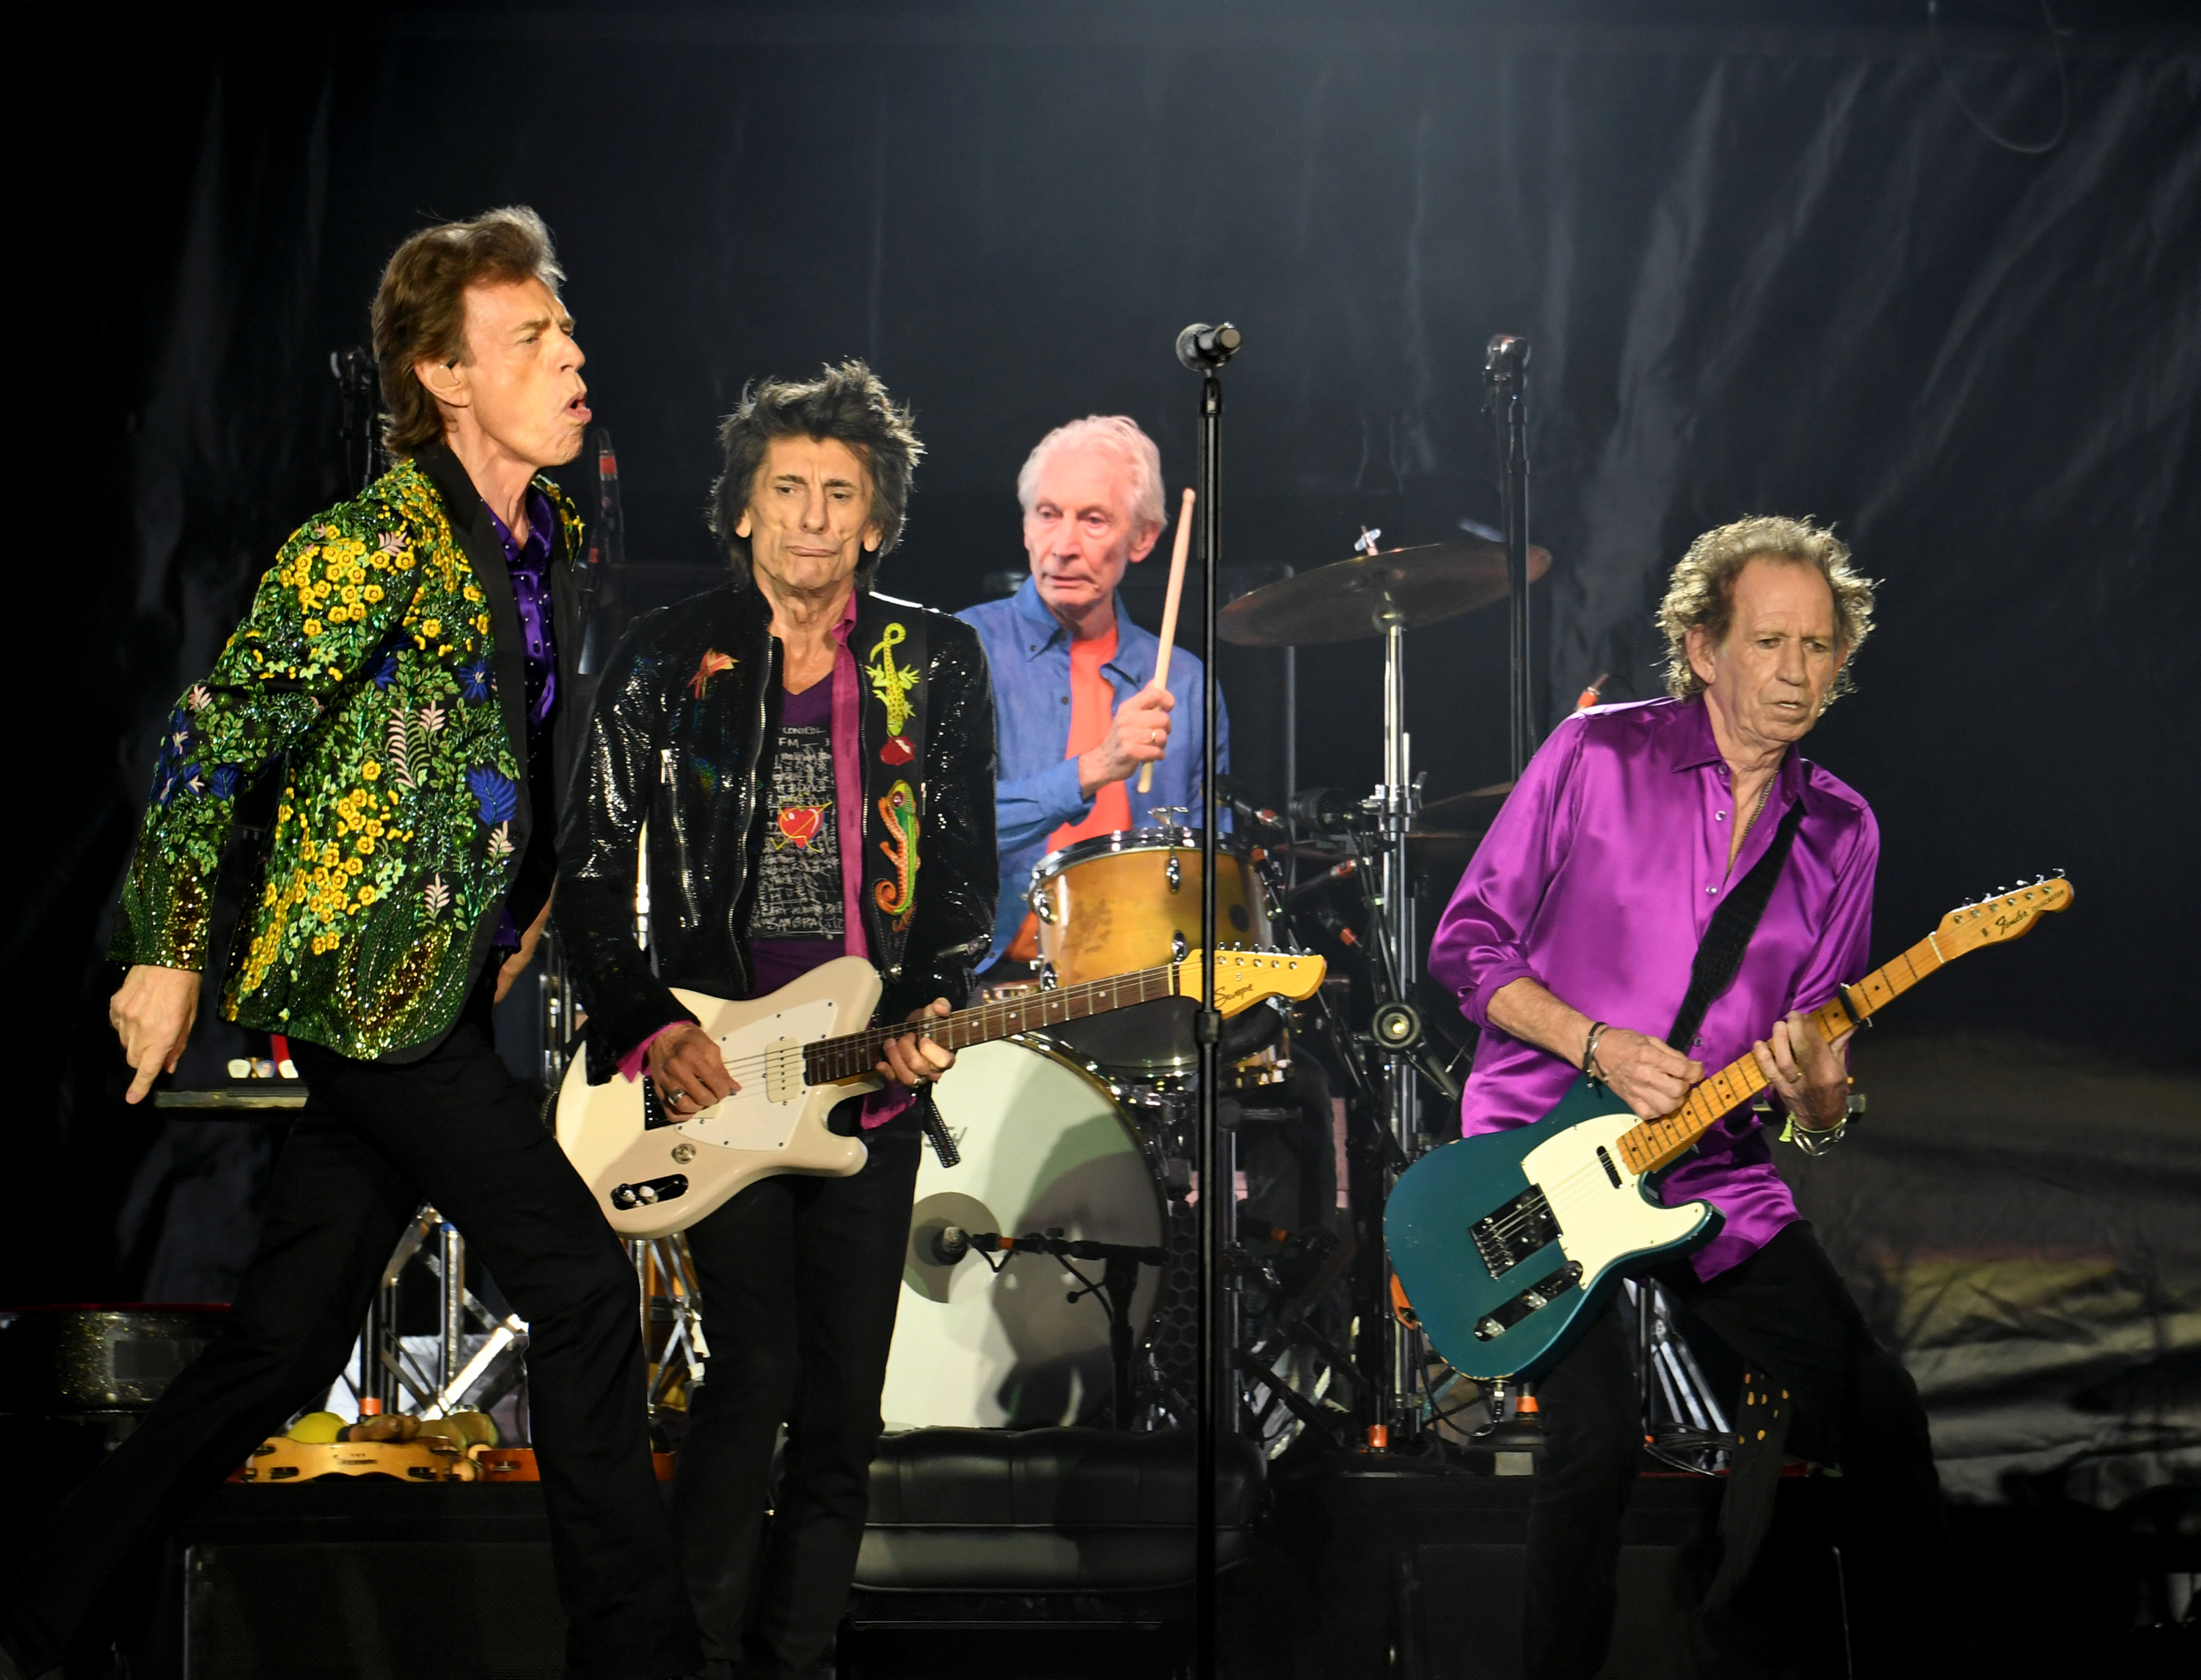 PASADENA, CALIFORNIA - AUGUST 22: (L-R) Mick Jagger, Ronnie Wood, Charlie Watts and Keith Richards of The Rolling Stones perform onstage at Rose Bowl on August 22, 2019 in Pasadena, California. (Photo by Kevin Winter/Getty Images)